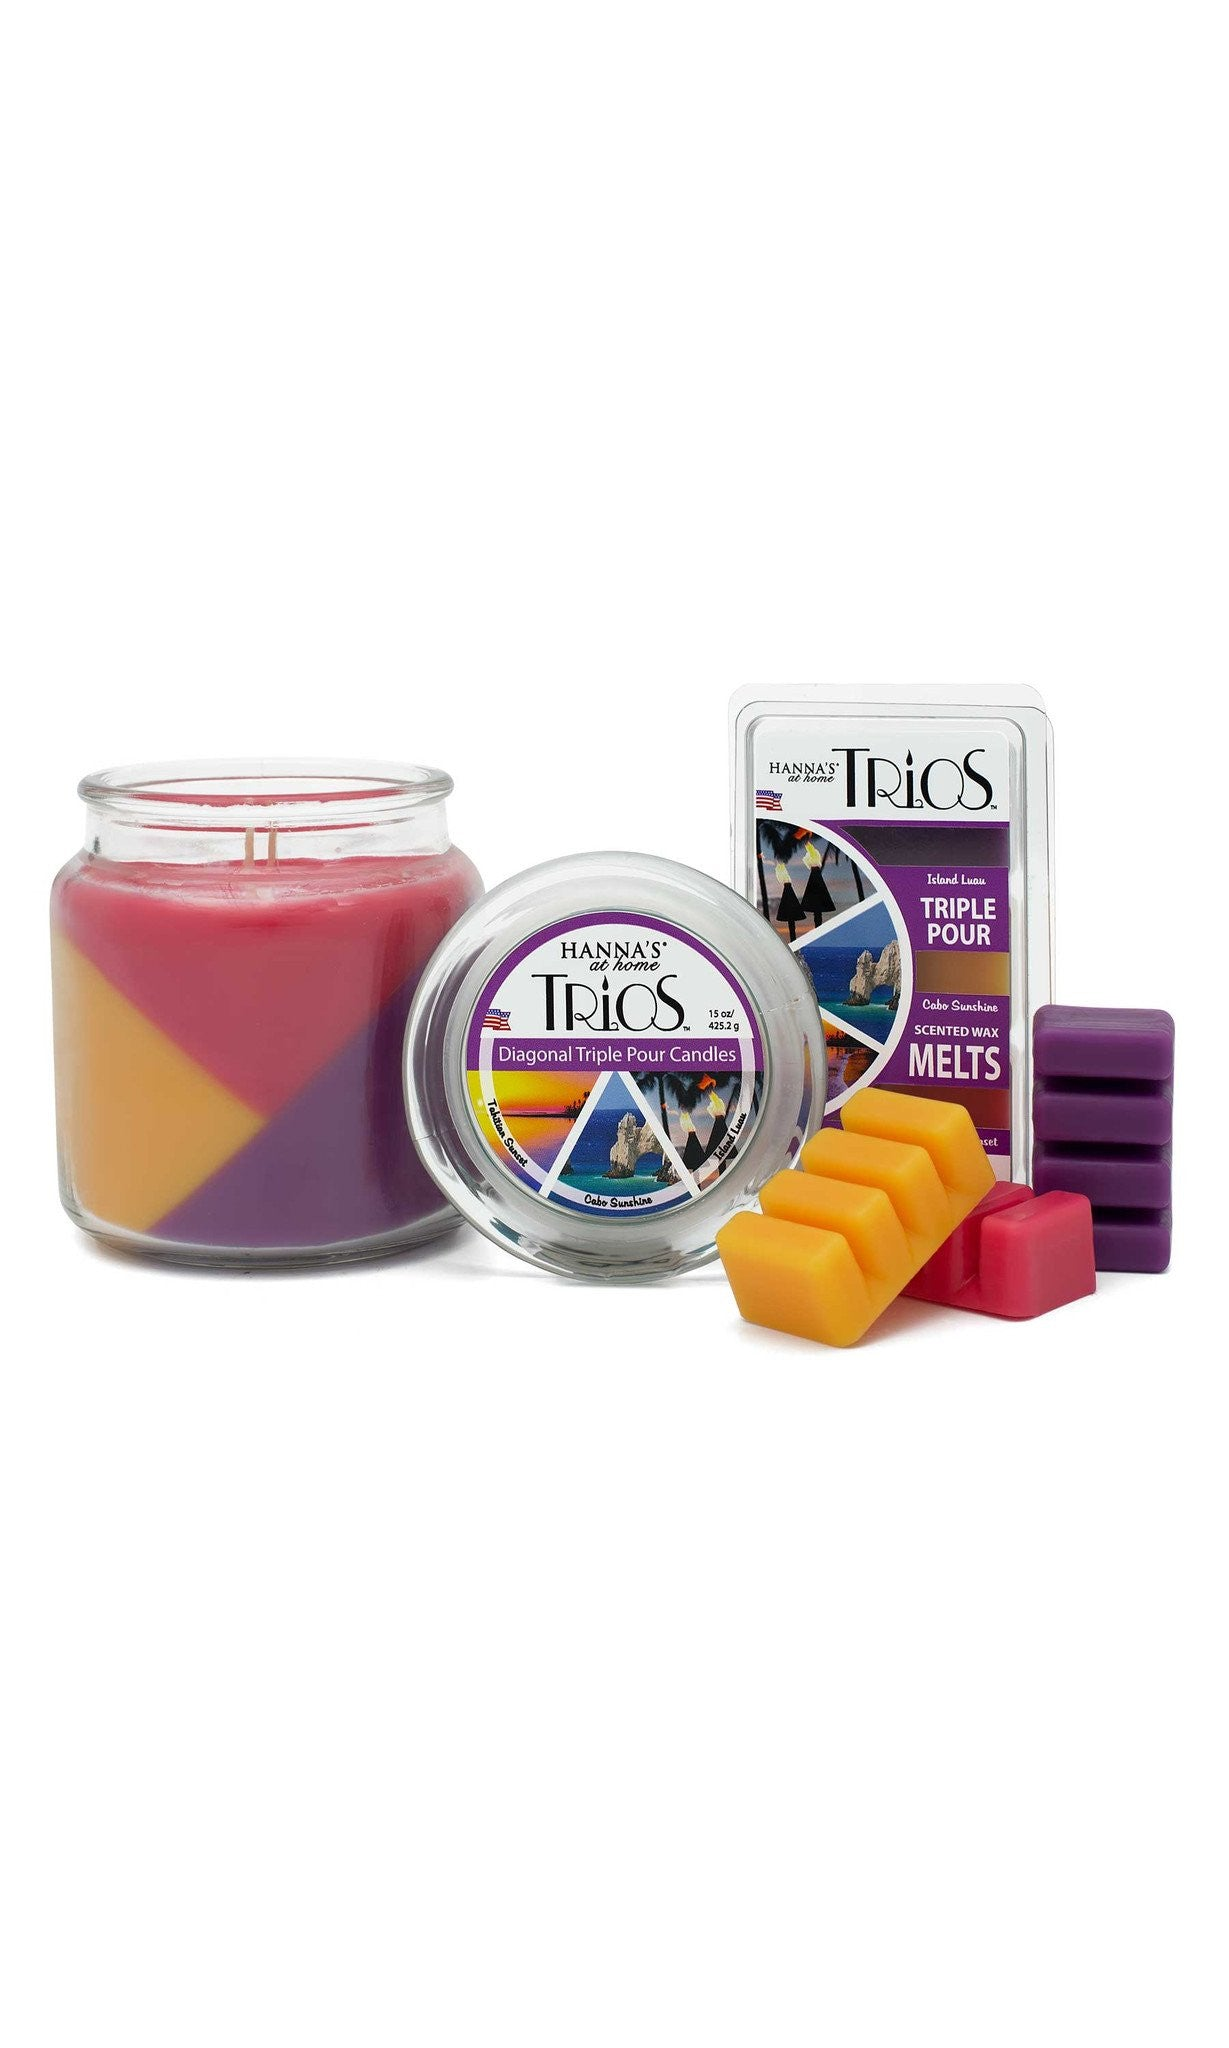 Trios Triple Pour Tahitian Sunset Scented Candle - Candlemart.com - 2